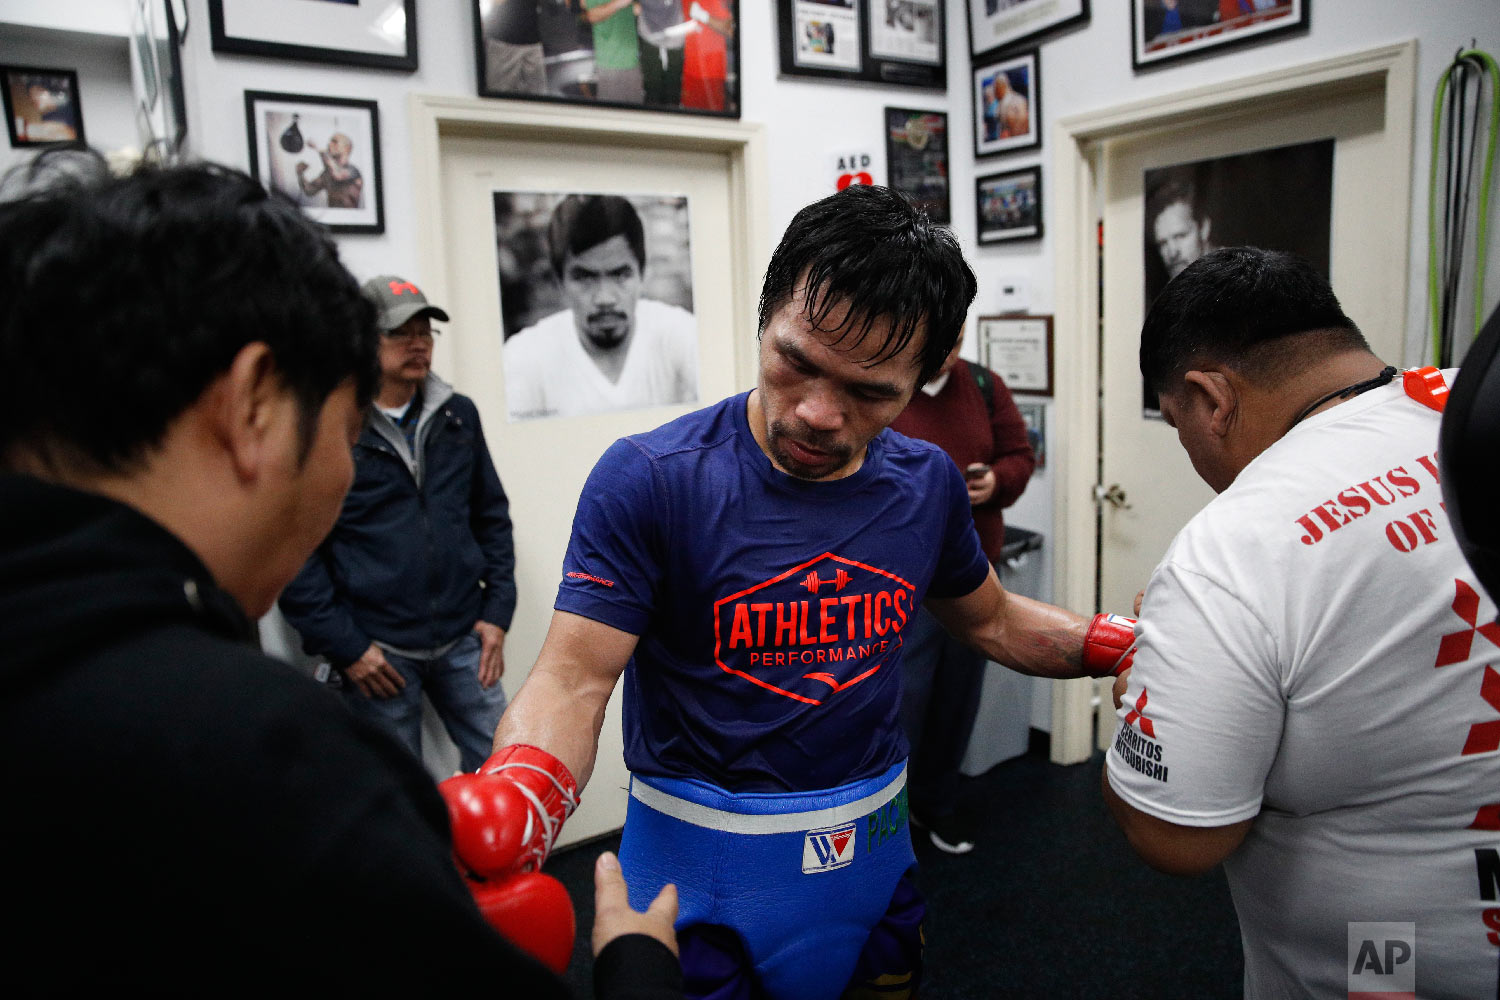 Soaked in sweat, boxer Manny Pacquiao gets his gloves removed after a workout at the Wild Card Boxing Club Monday, Jan. 14, 2019, in Los Angeles. (AP Photo/Jae C. Hong)